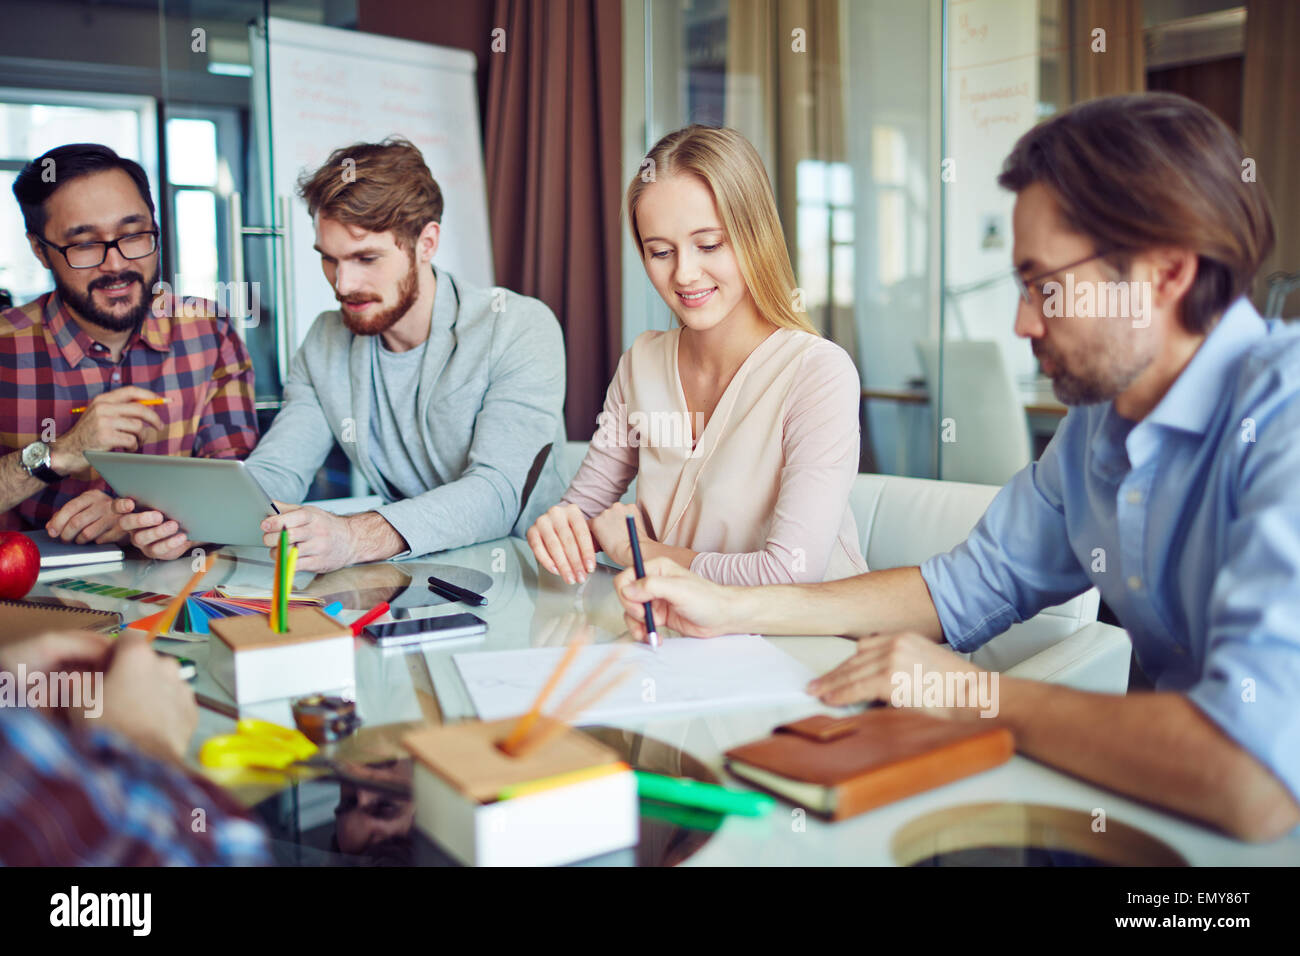 Business group planning work in office - Stock Image